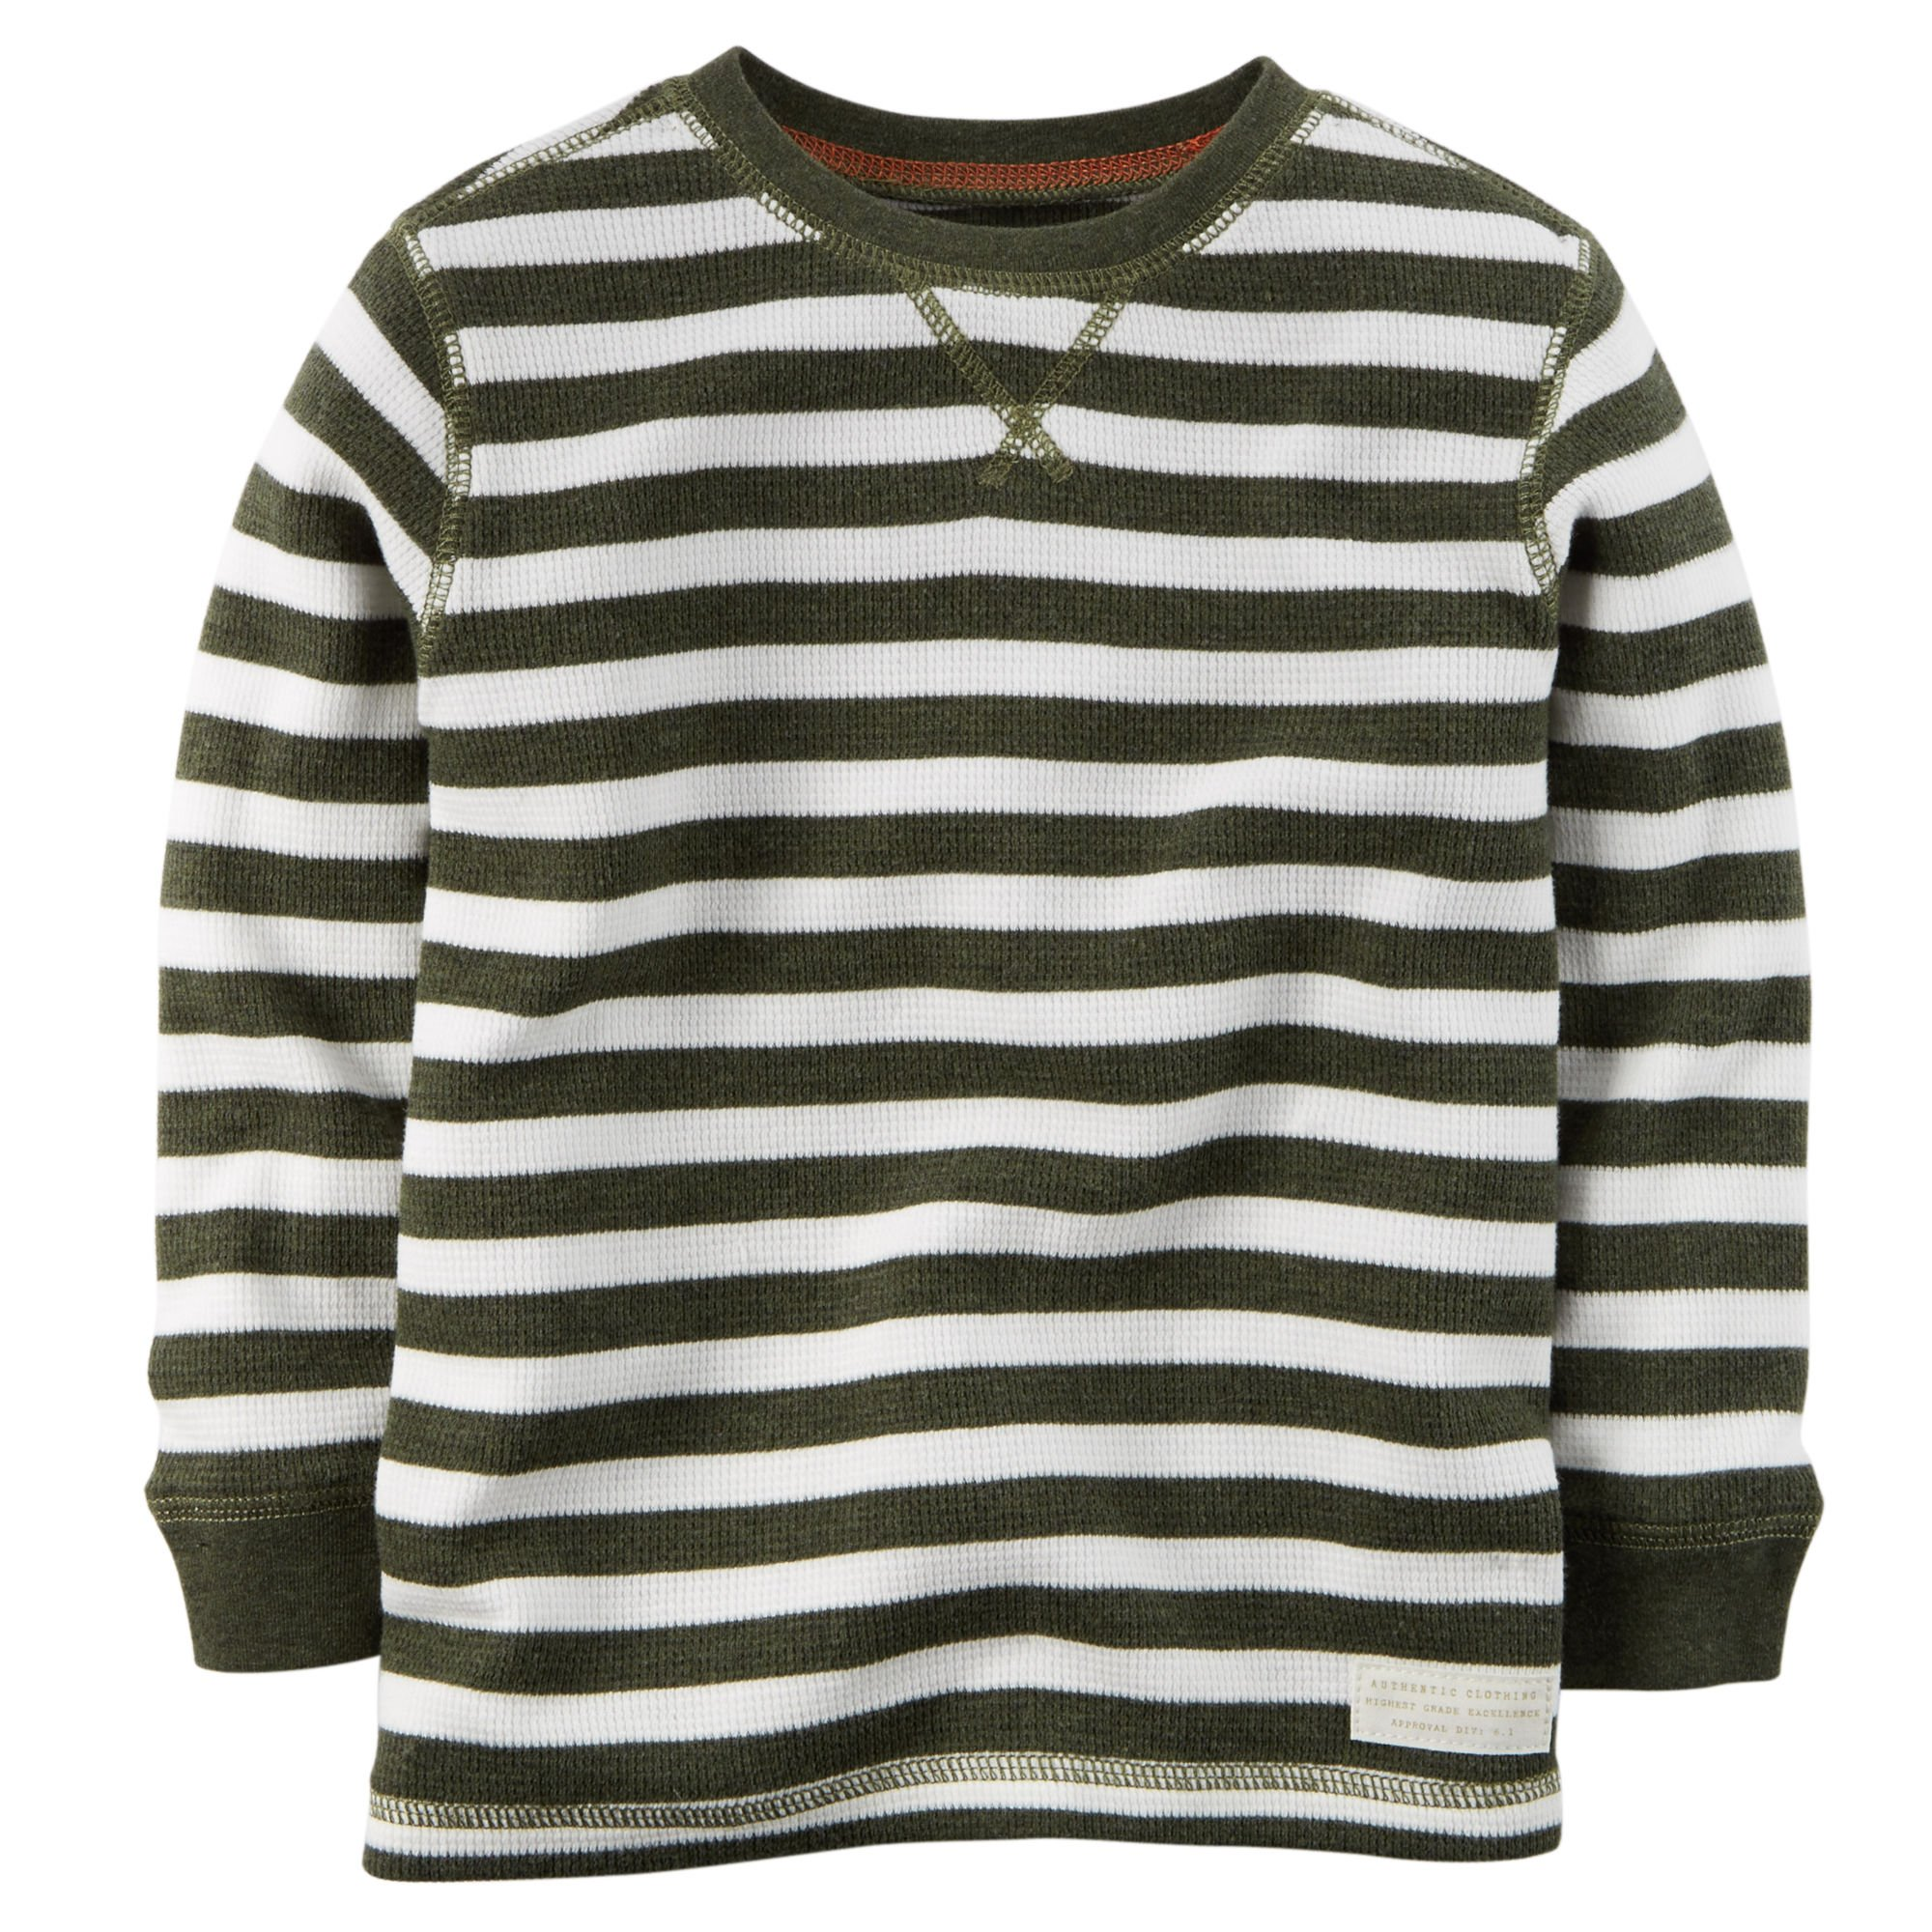 Carter's Little Boys' Striped Thermal Shirt (6, Olive) by Carter's